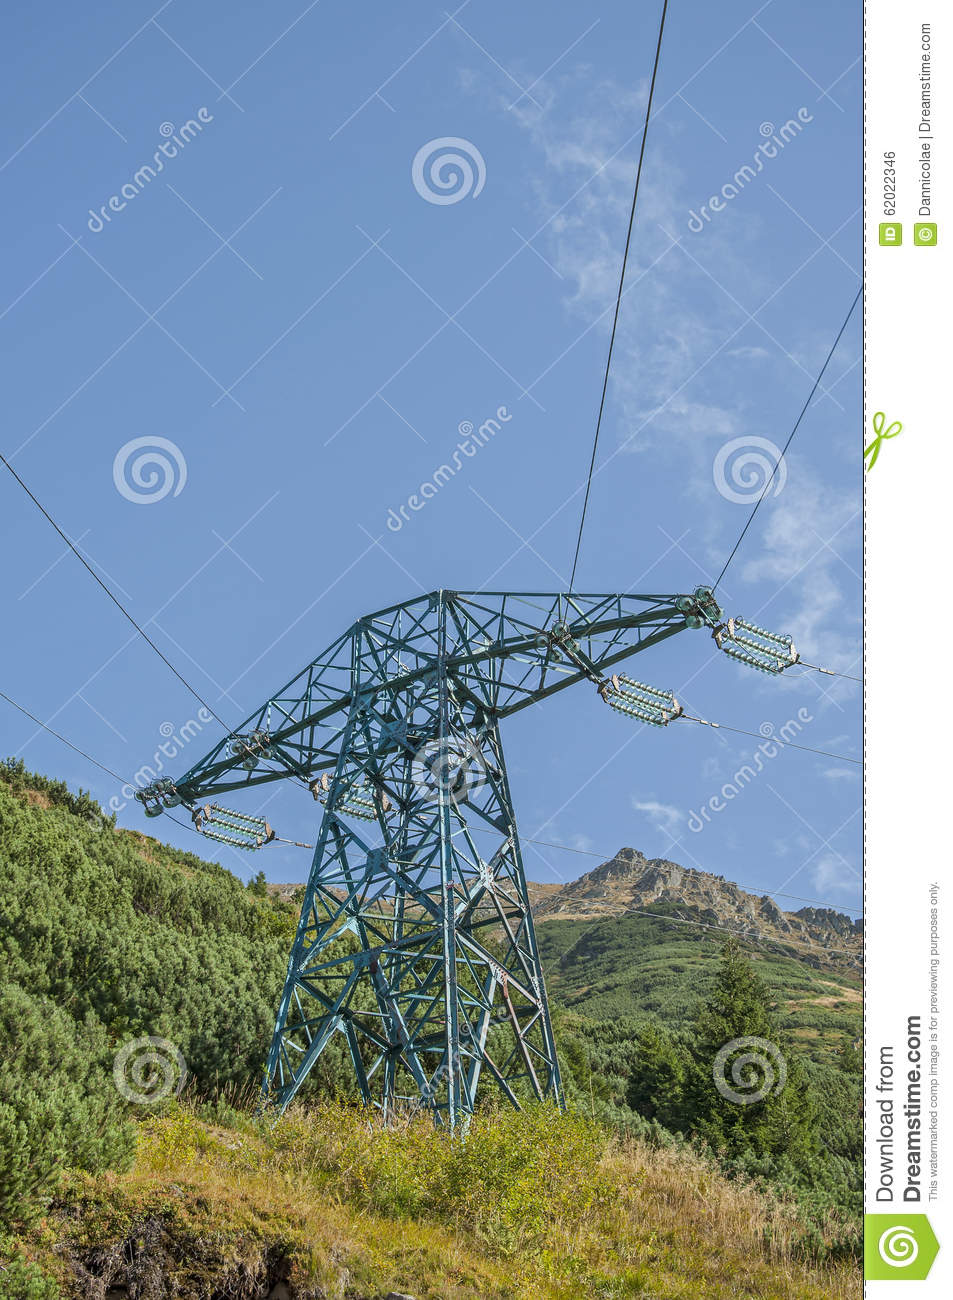 High Voltage Power Line Crossing The Mountains Stock Photo - Image ...